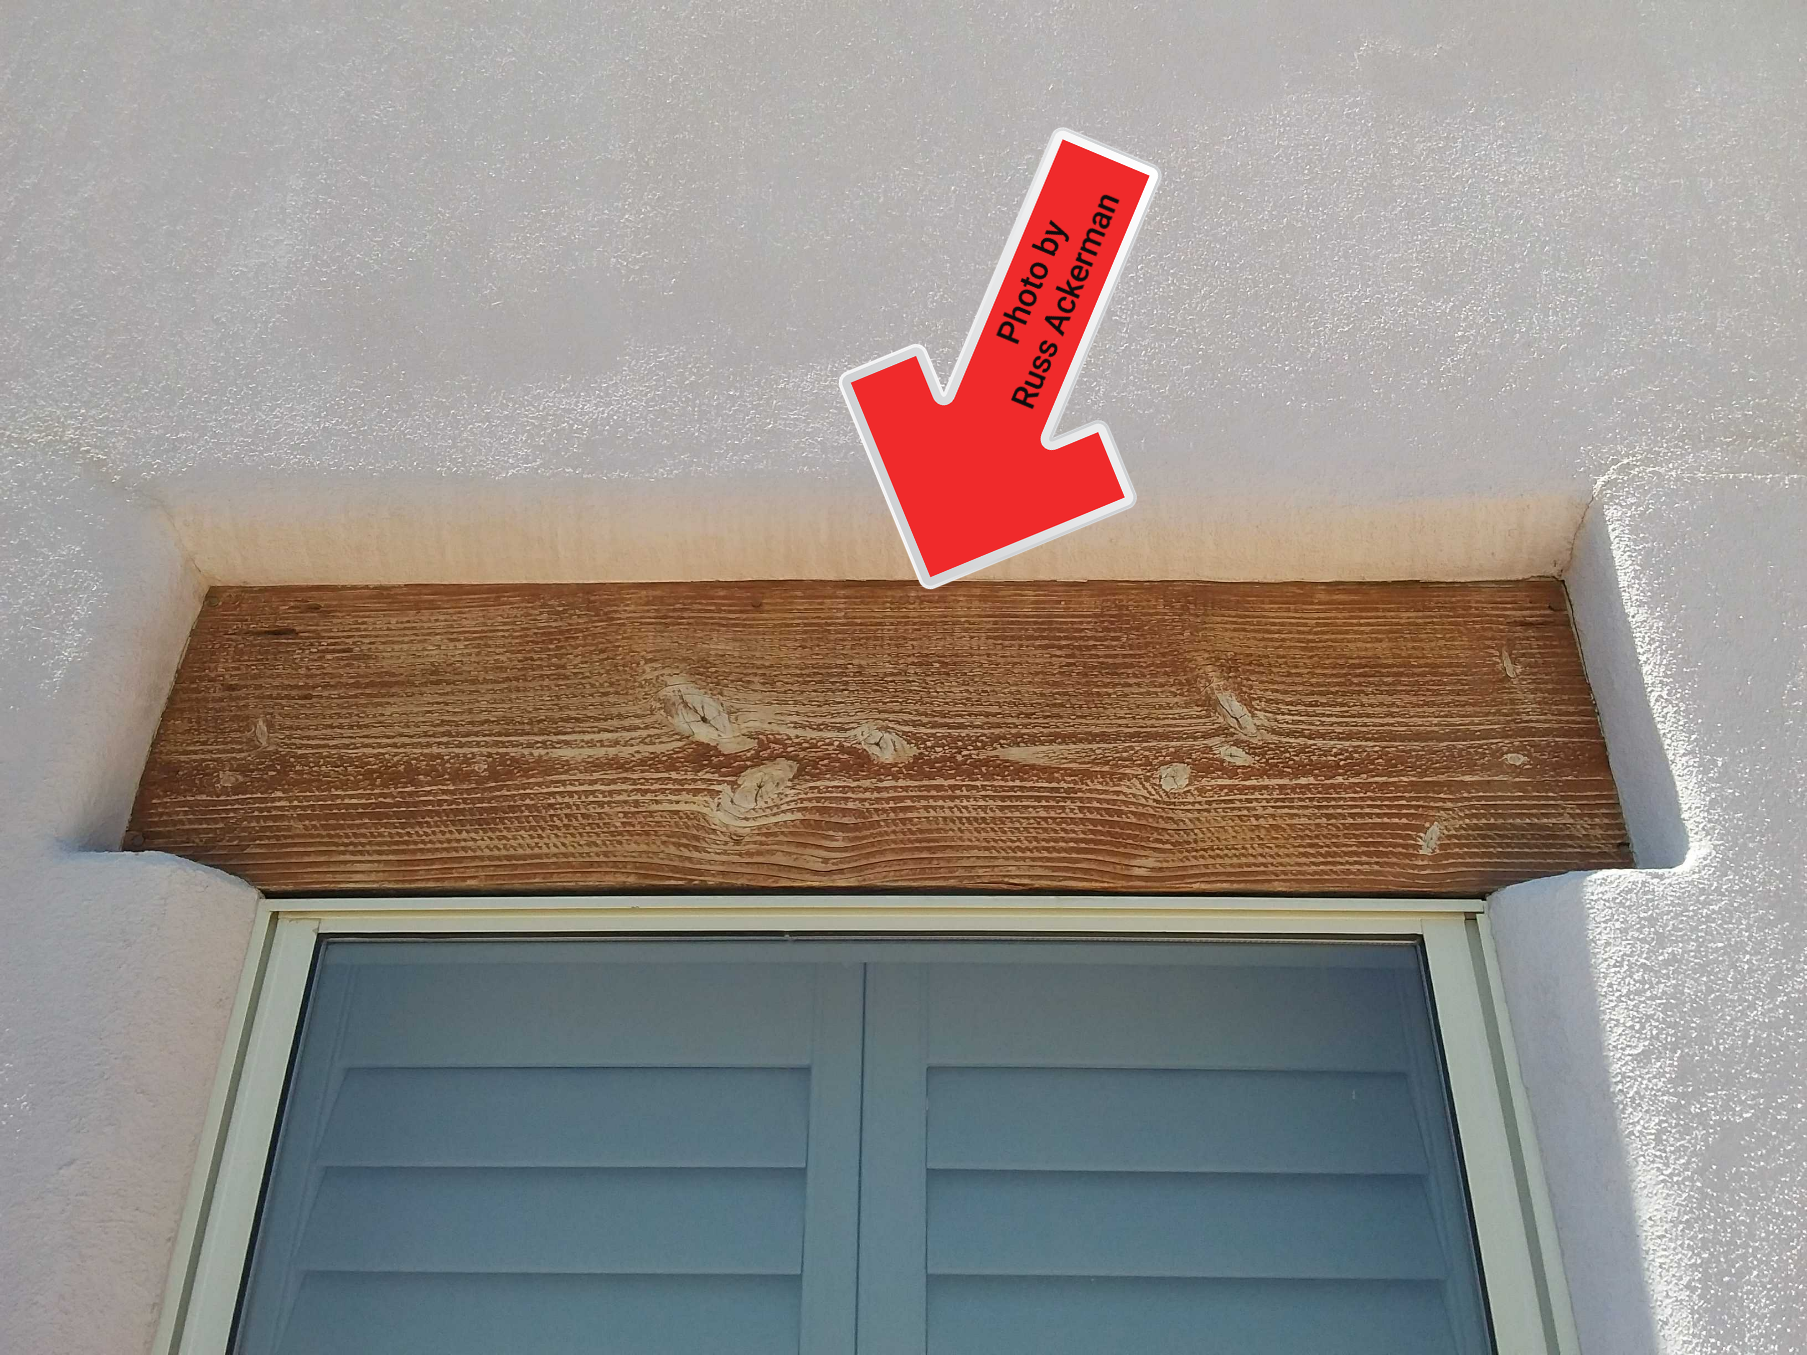 Exposed unpainted wood must be sealed every 3-5 years to reduce weathering and decay.